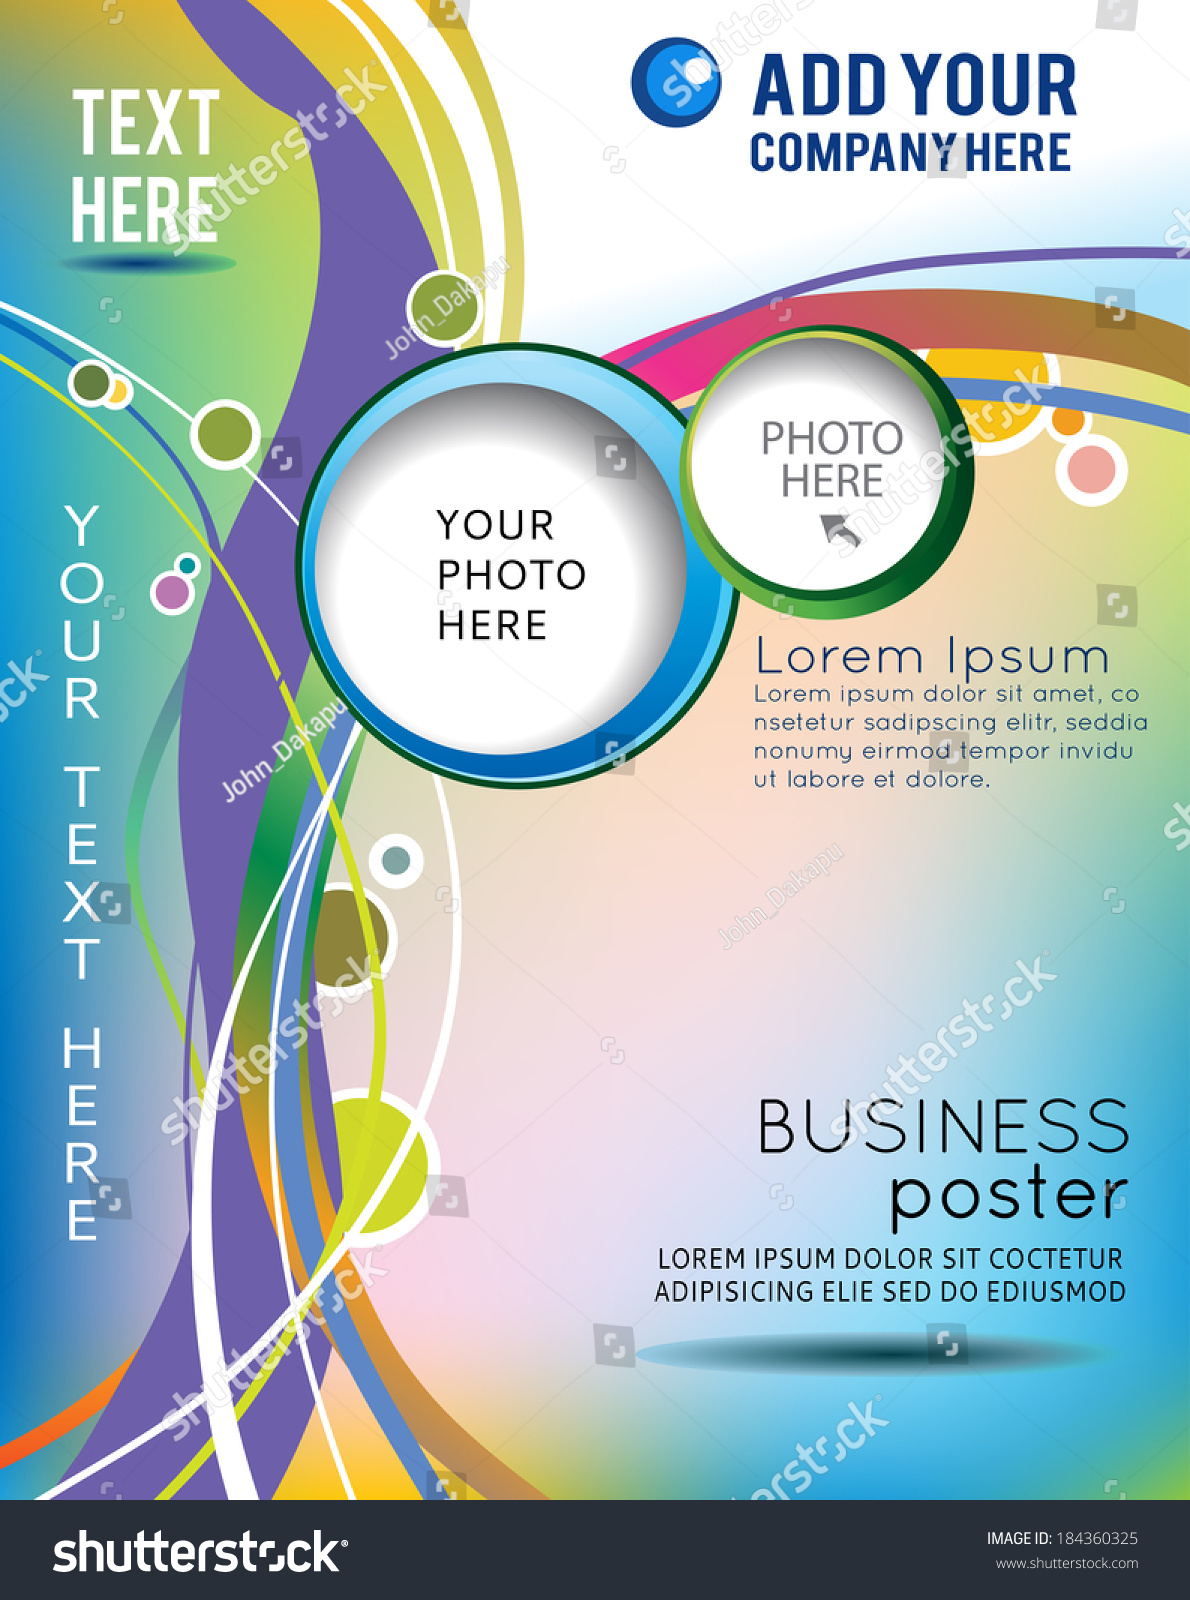 Poster design template free - Indesign Magazine Templates Free Template Download